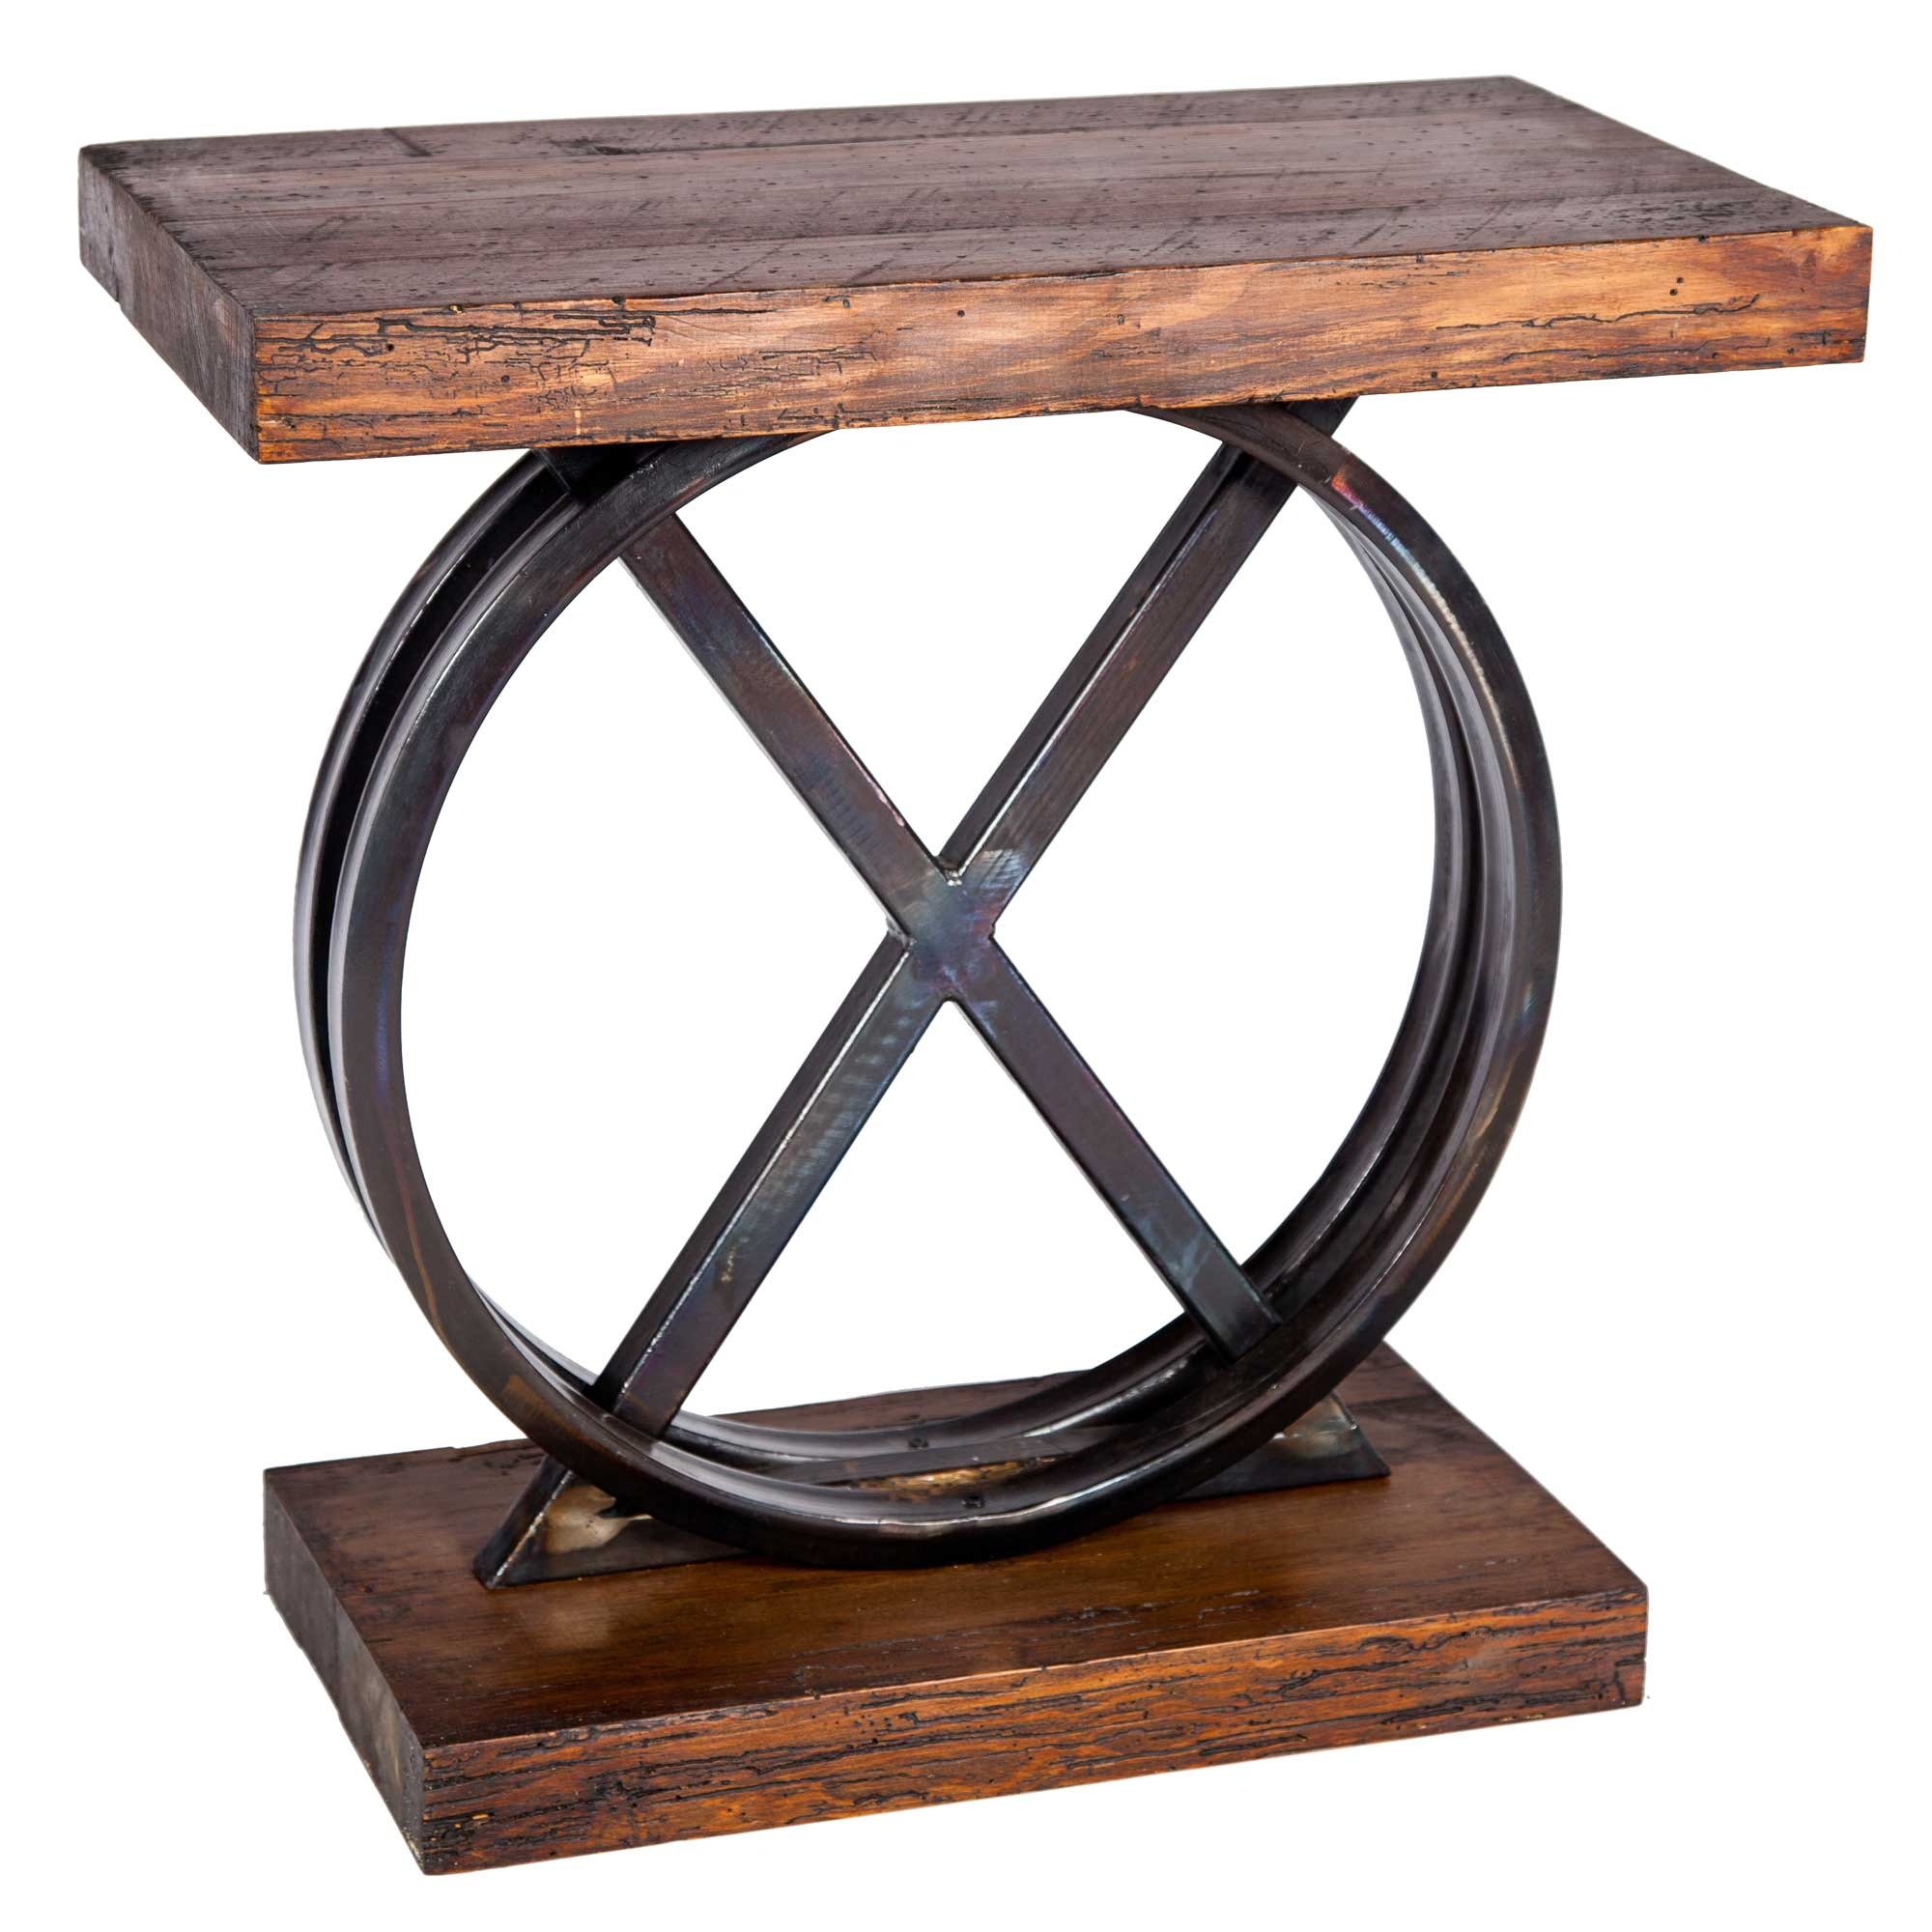 Pictured Here Is The Xo Side Table With Wrought Iron Base And Reclaimed Wood Top